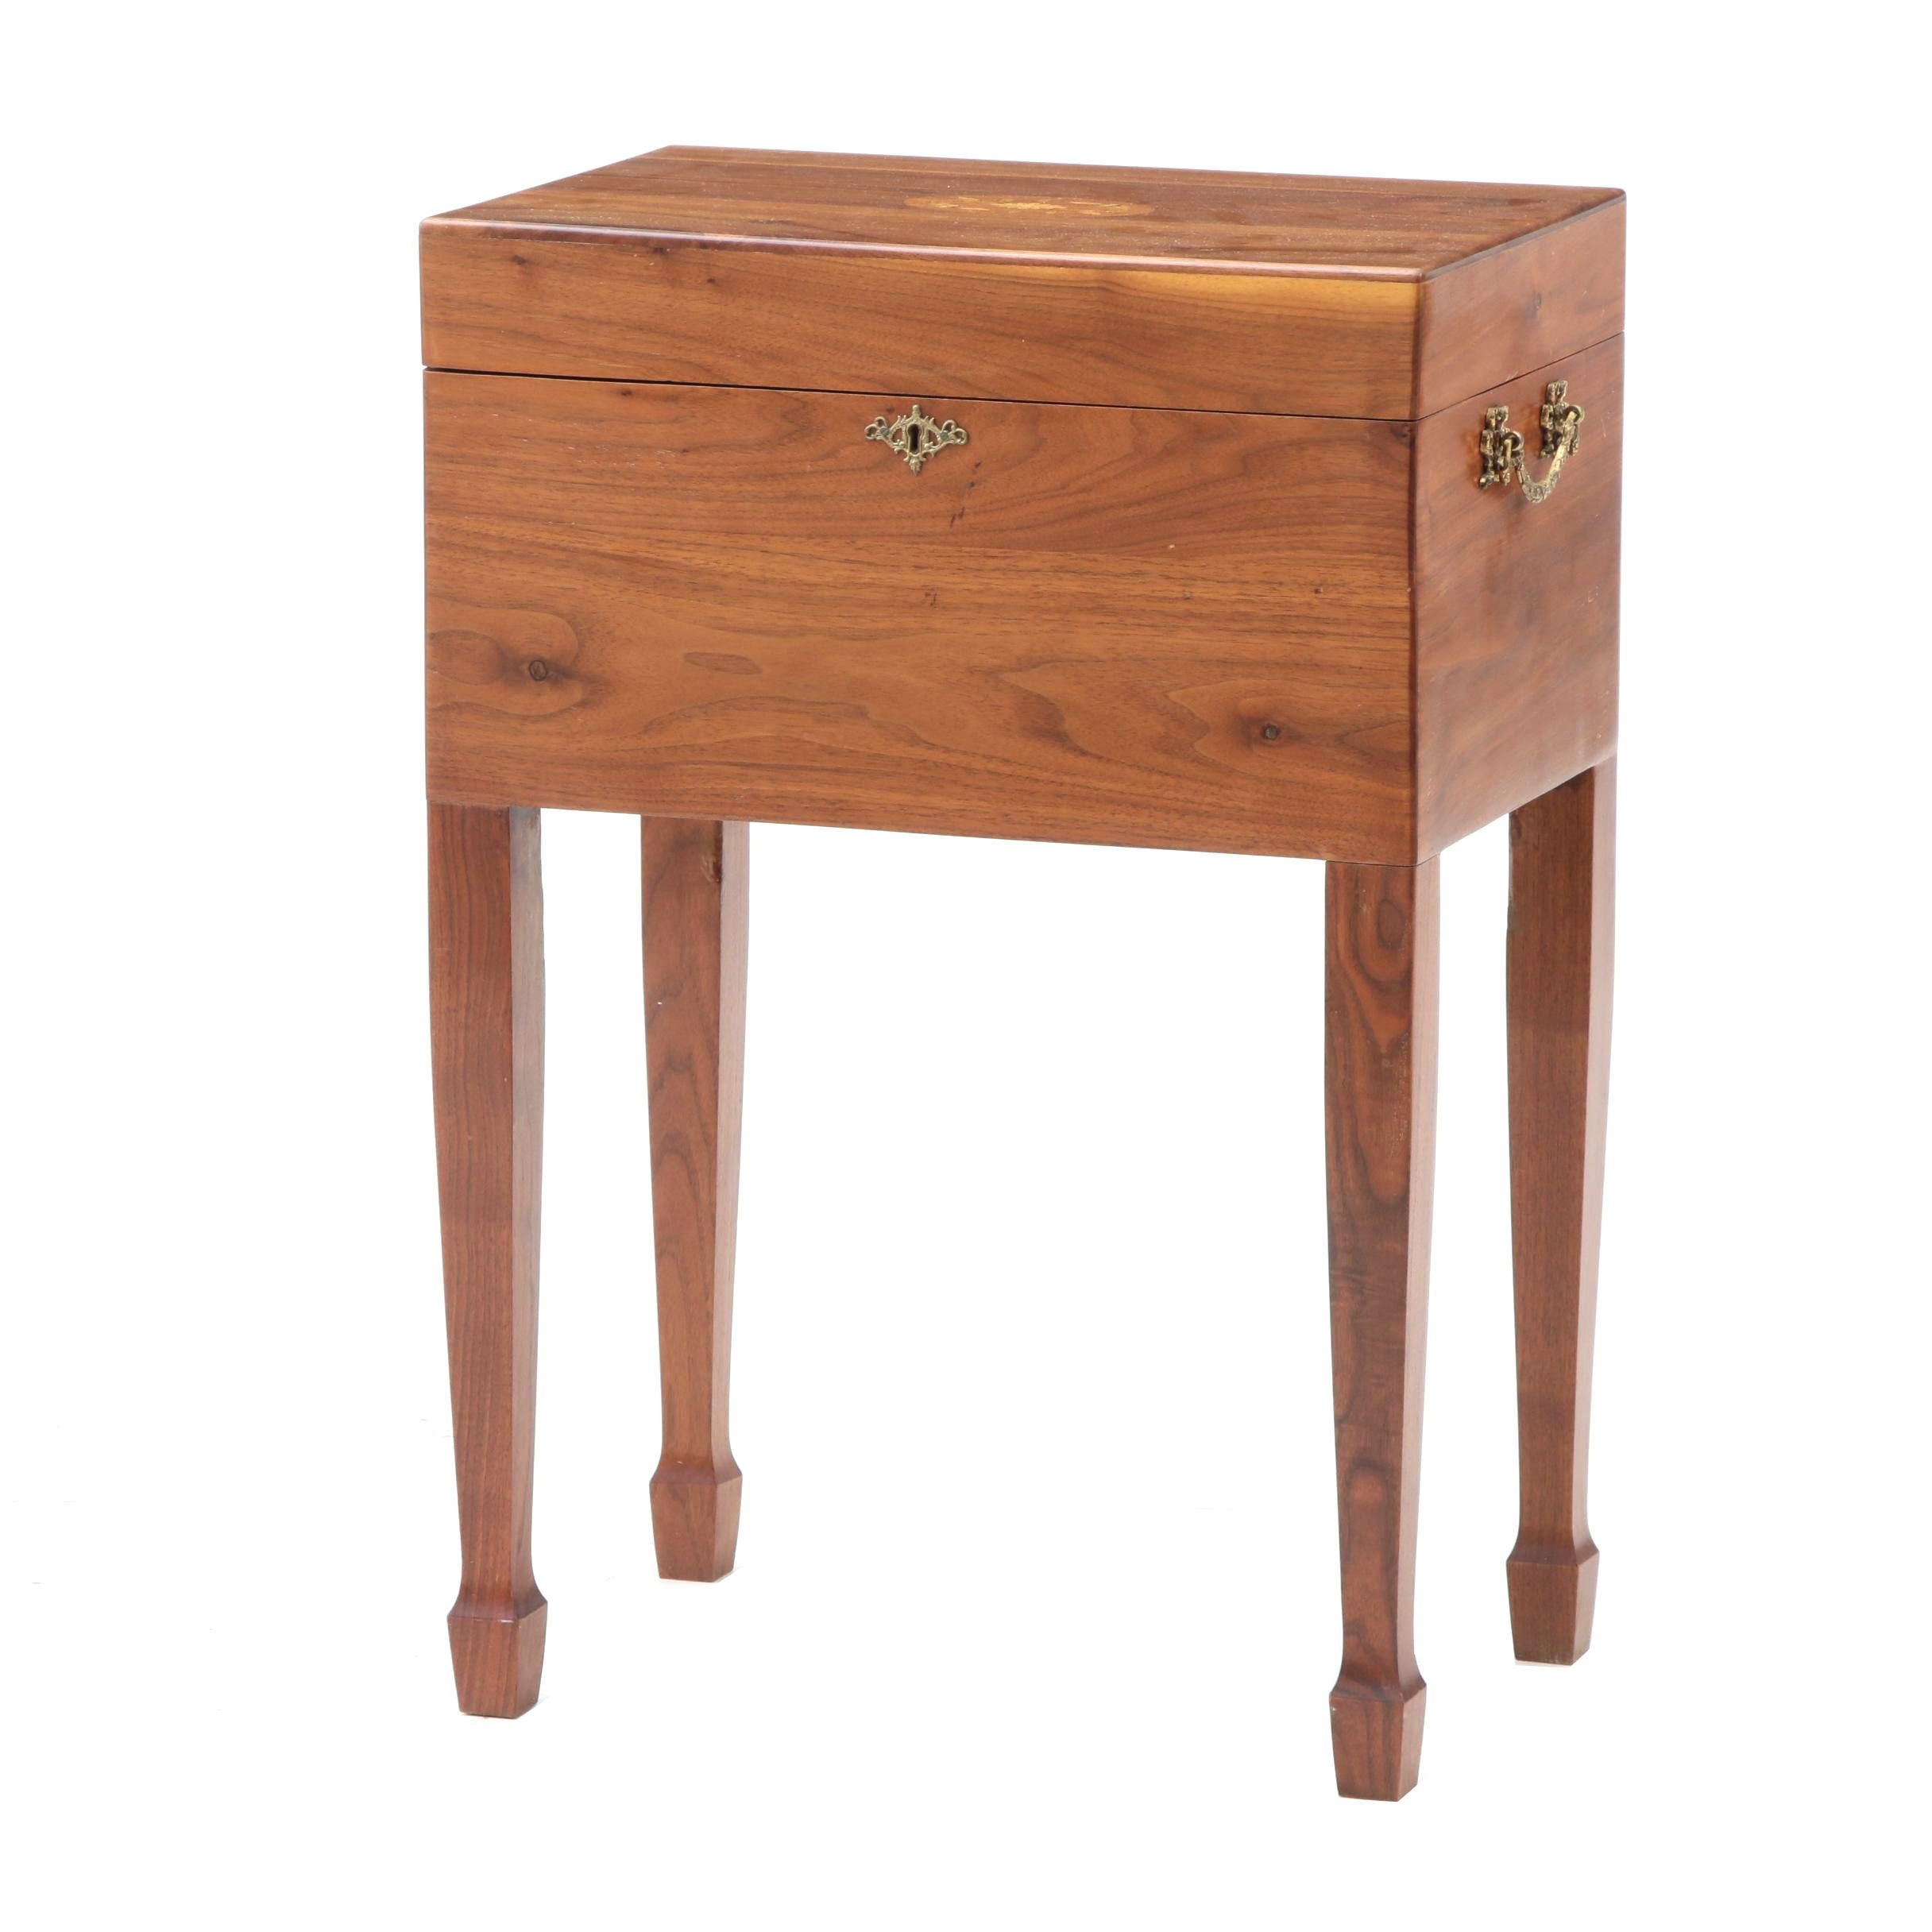 Cellarette Side Table with Marquetry in Walnut